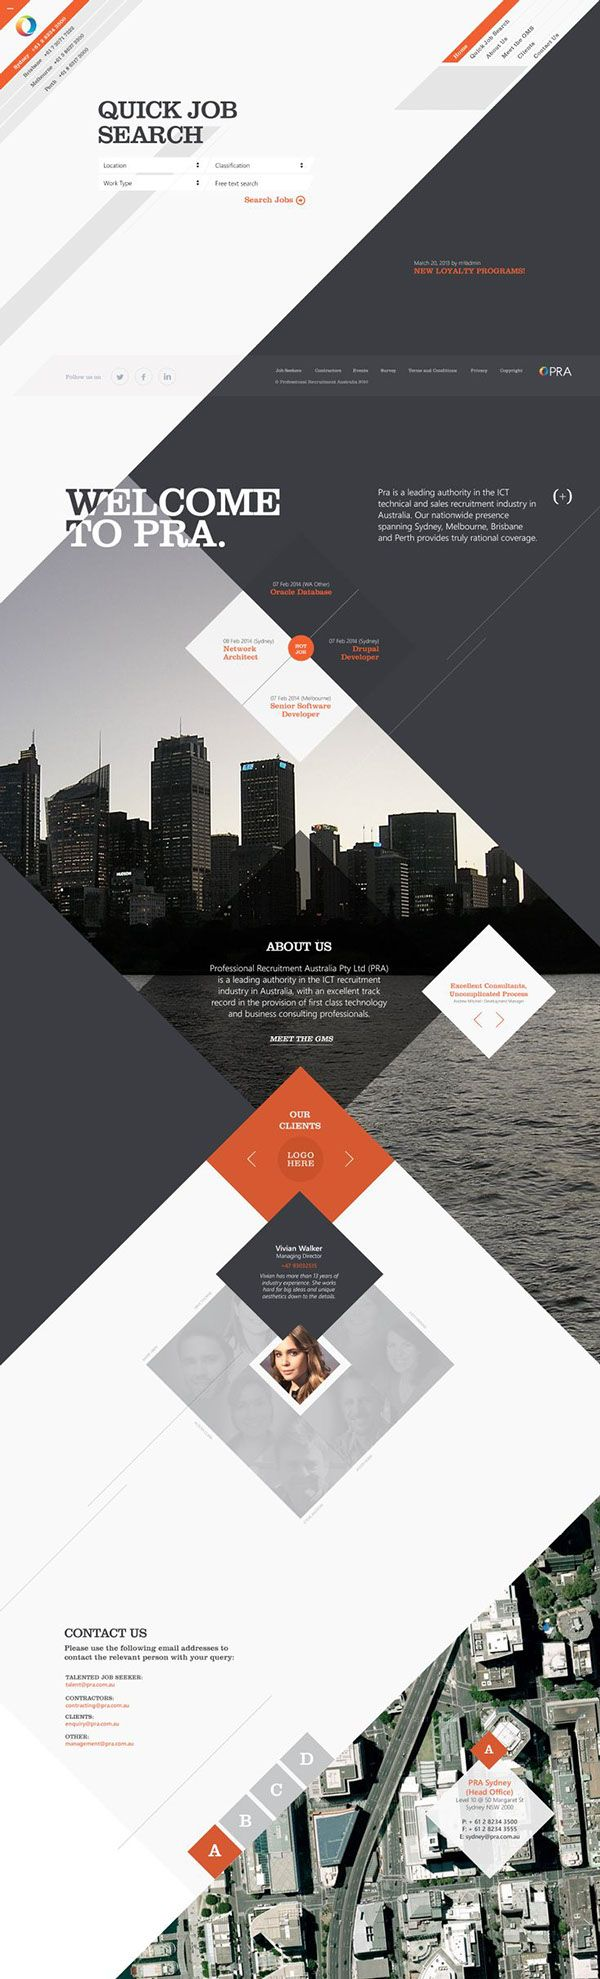 Job Search Template on Behance